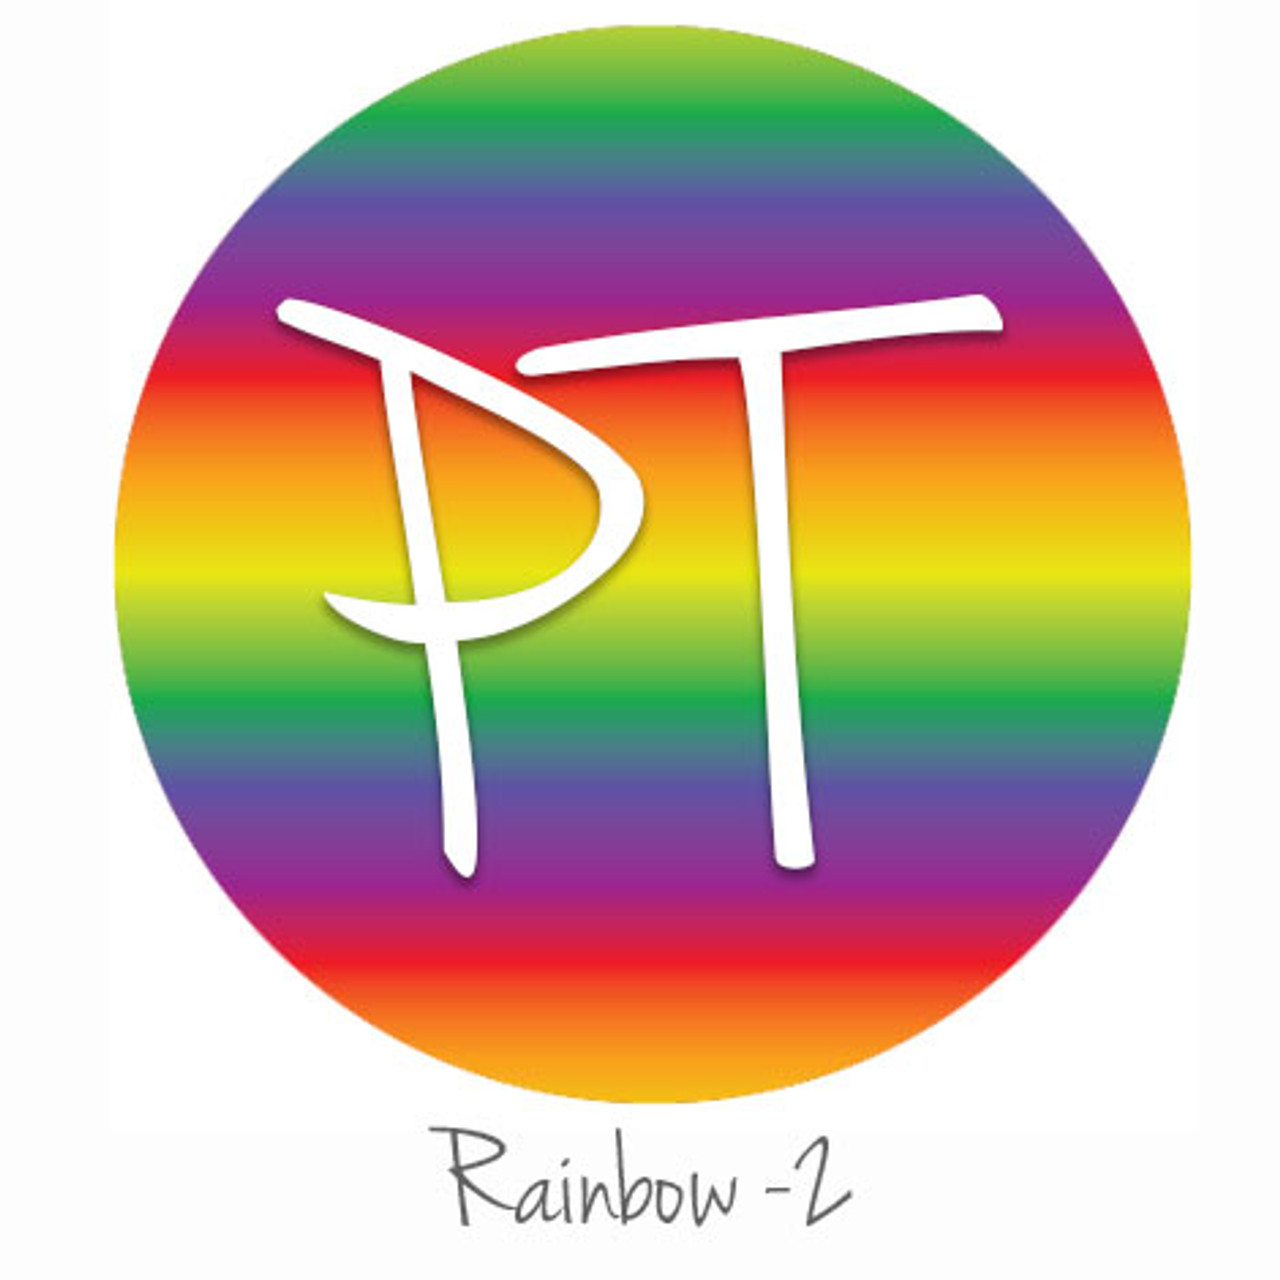 Rainbow HTV or Adhesive Vinyl Sheet Decal Heat Transfer or Permanent Adhesive Vinyl Pattern Iron On Stickers 12x15 Inches